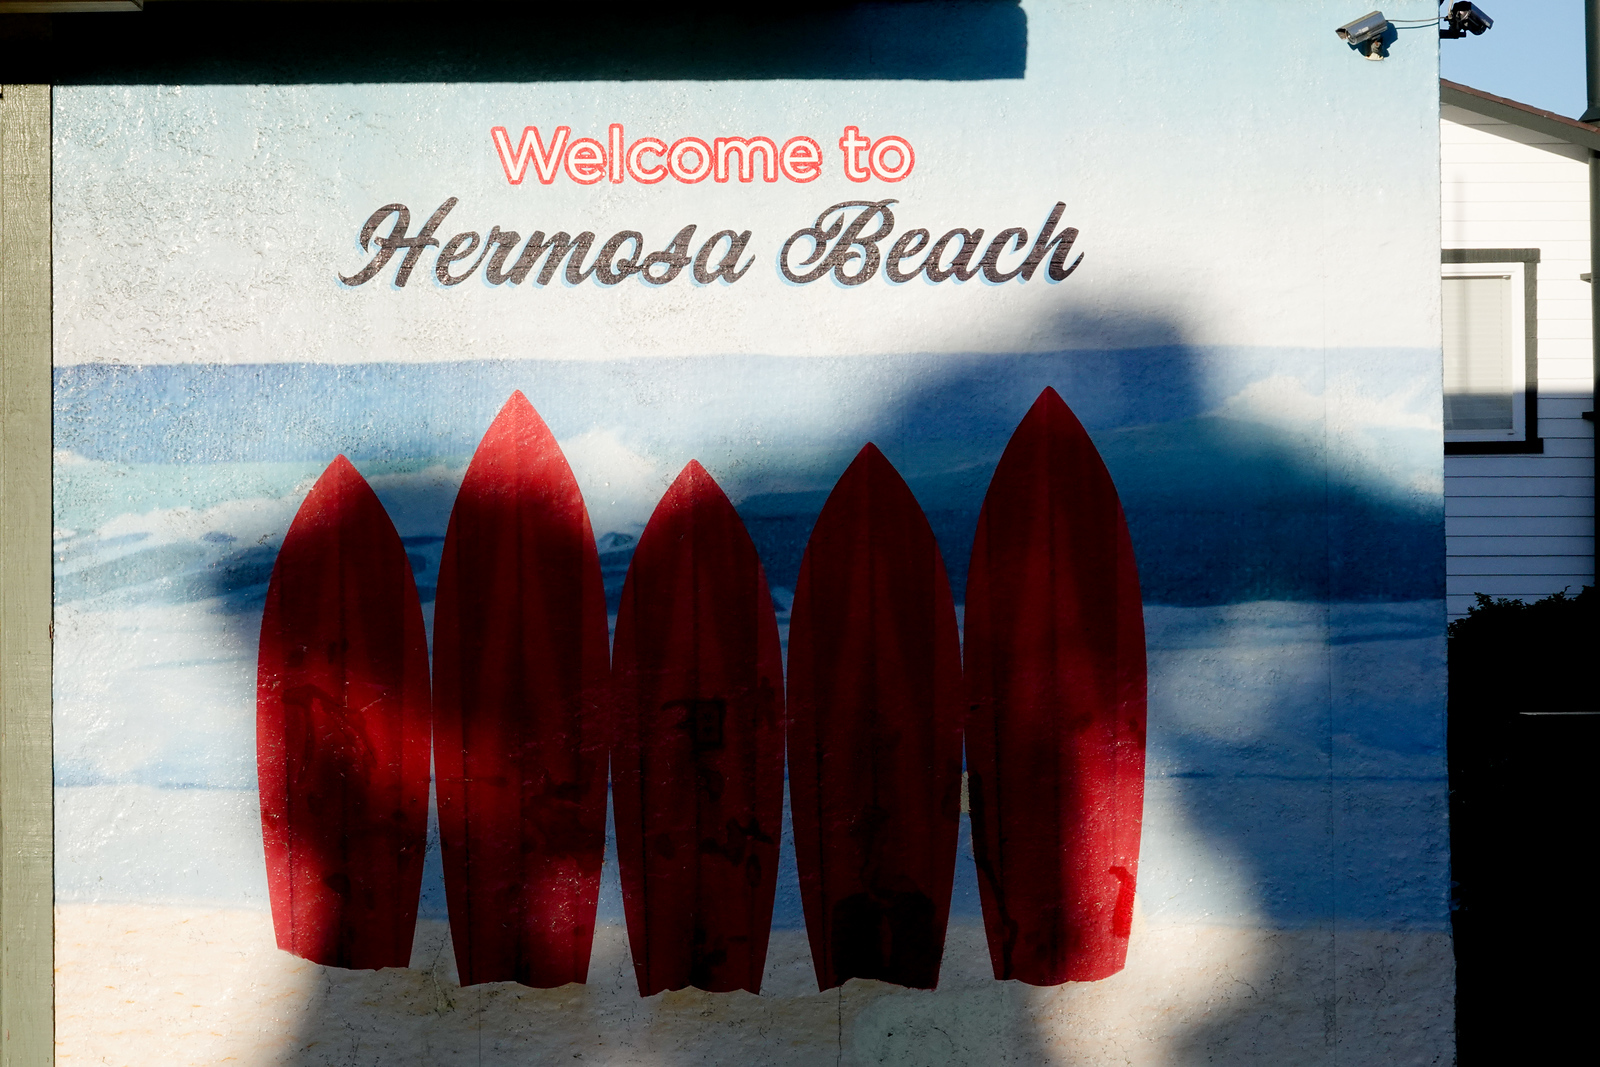 A local liqour store welcomes folks to Hermosa Beach